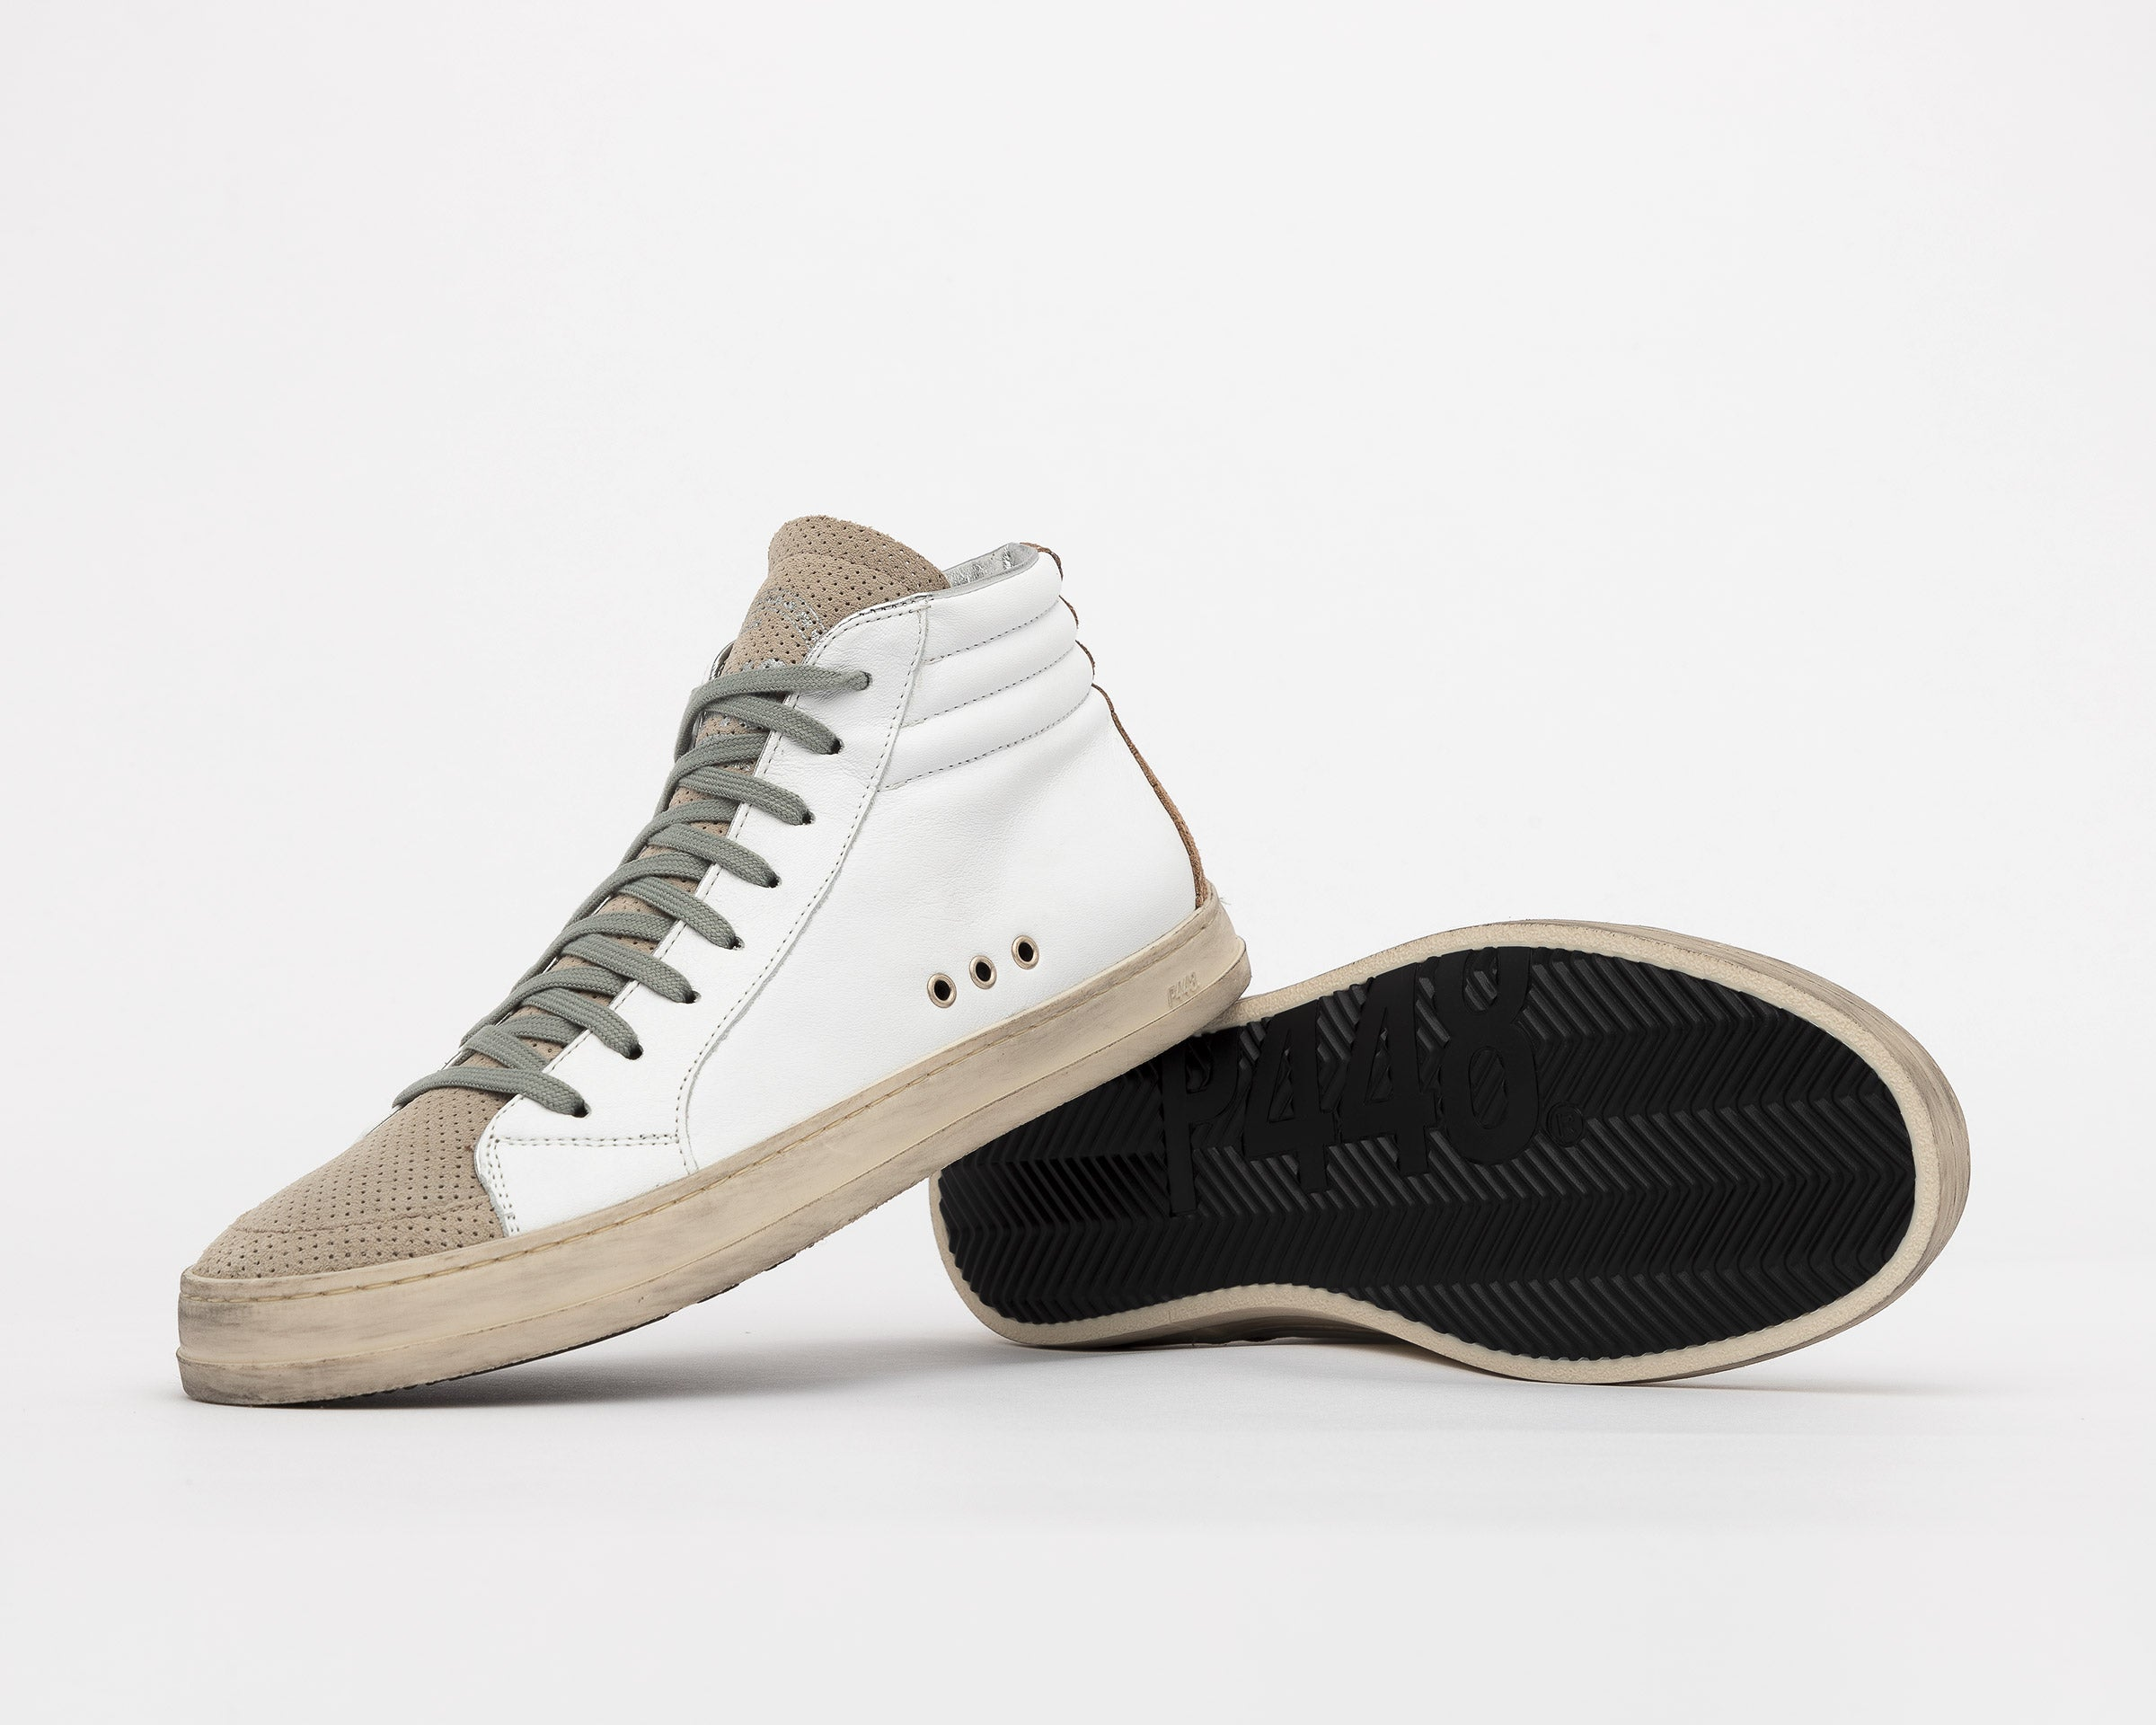 Skate High-Top Sneaker in White/Vtab - Detail